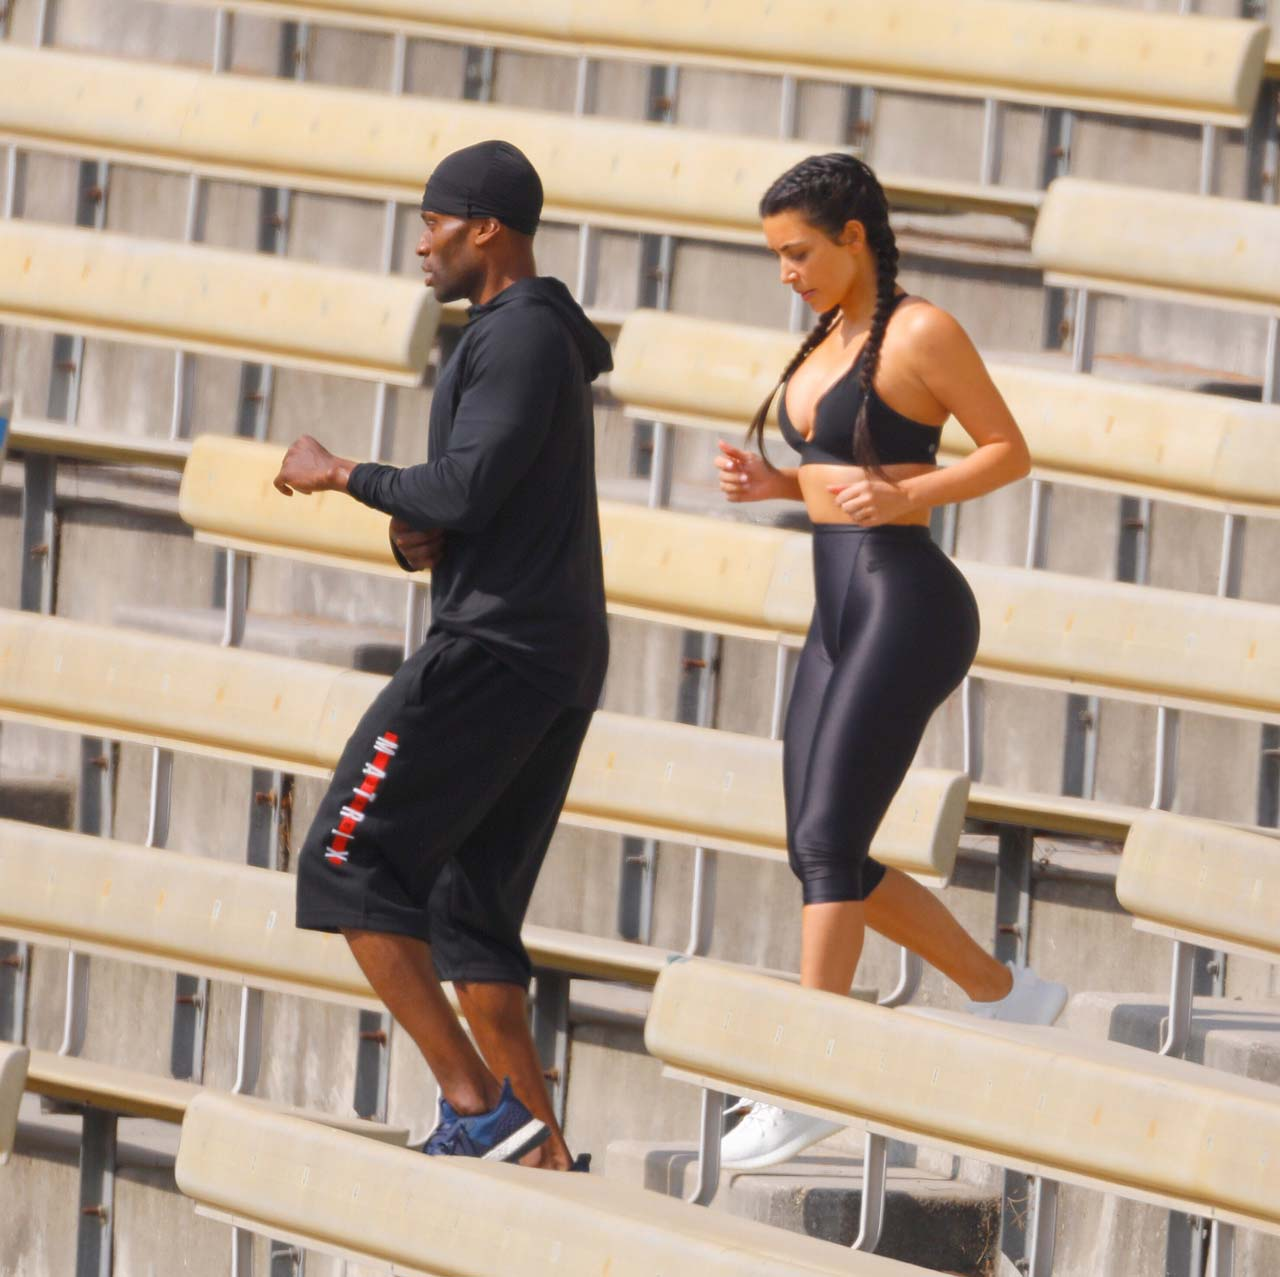 She was seen doing pull-ups and squats as well as running up and down some steps at near-by bleachers. Kim was working out for more than an hour and a half in the Lon Angeles heat before heading back to her car with her bodyguard. PICTURES BY SPLASH NEWS